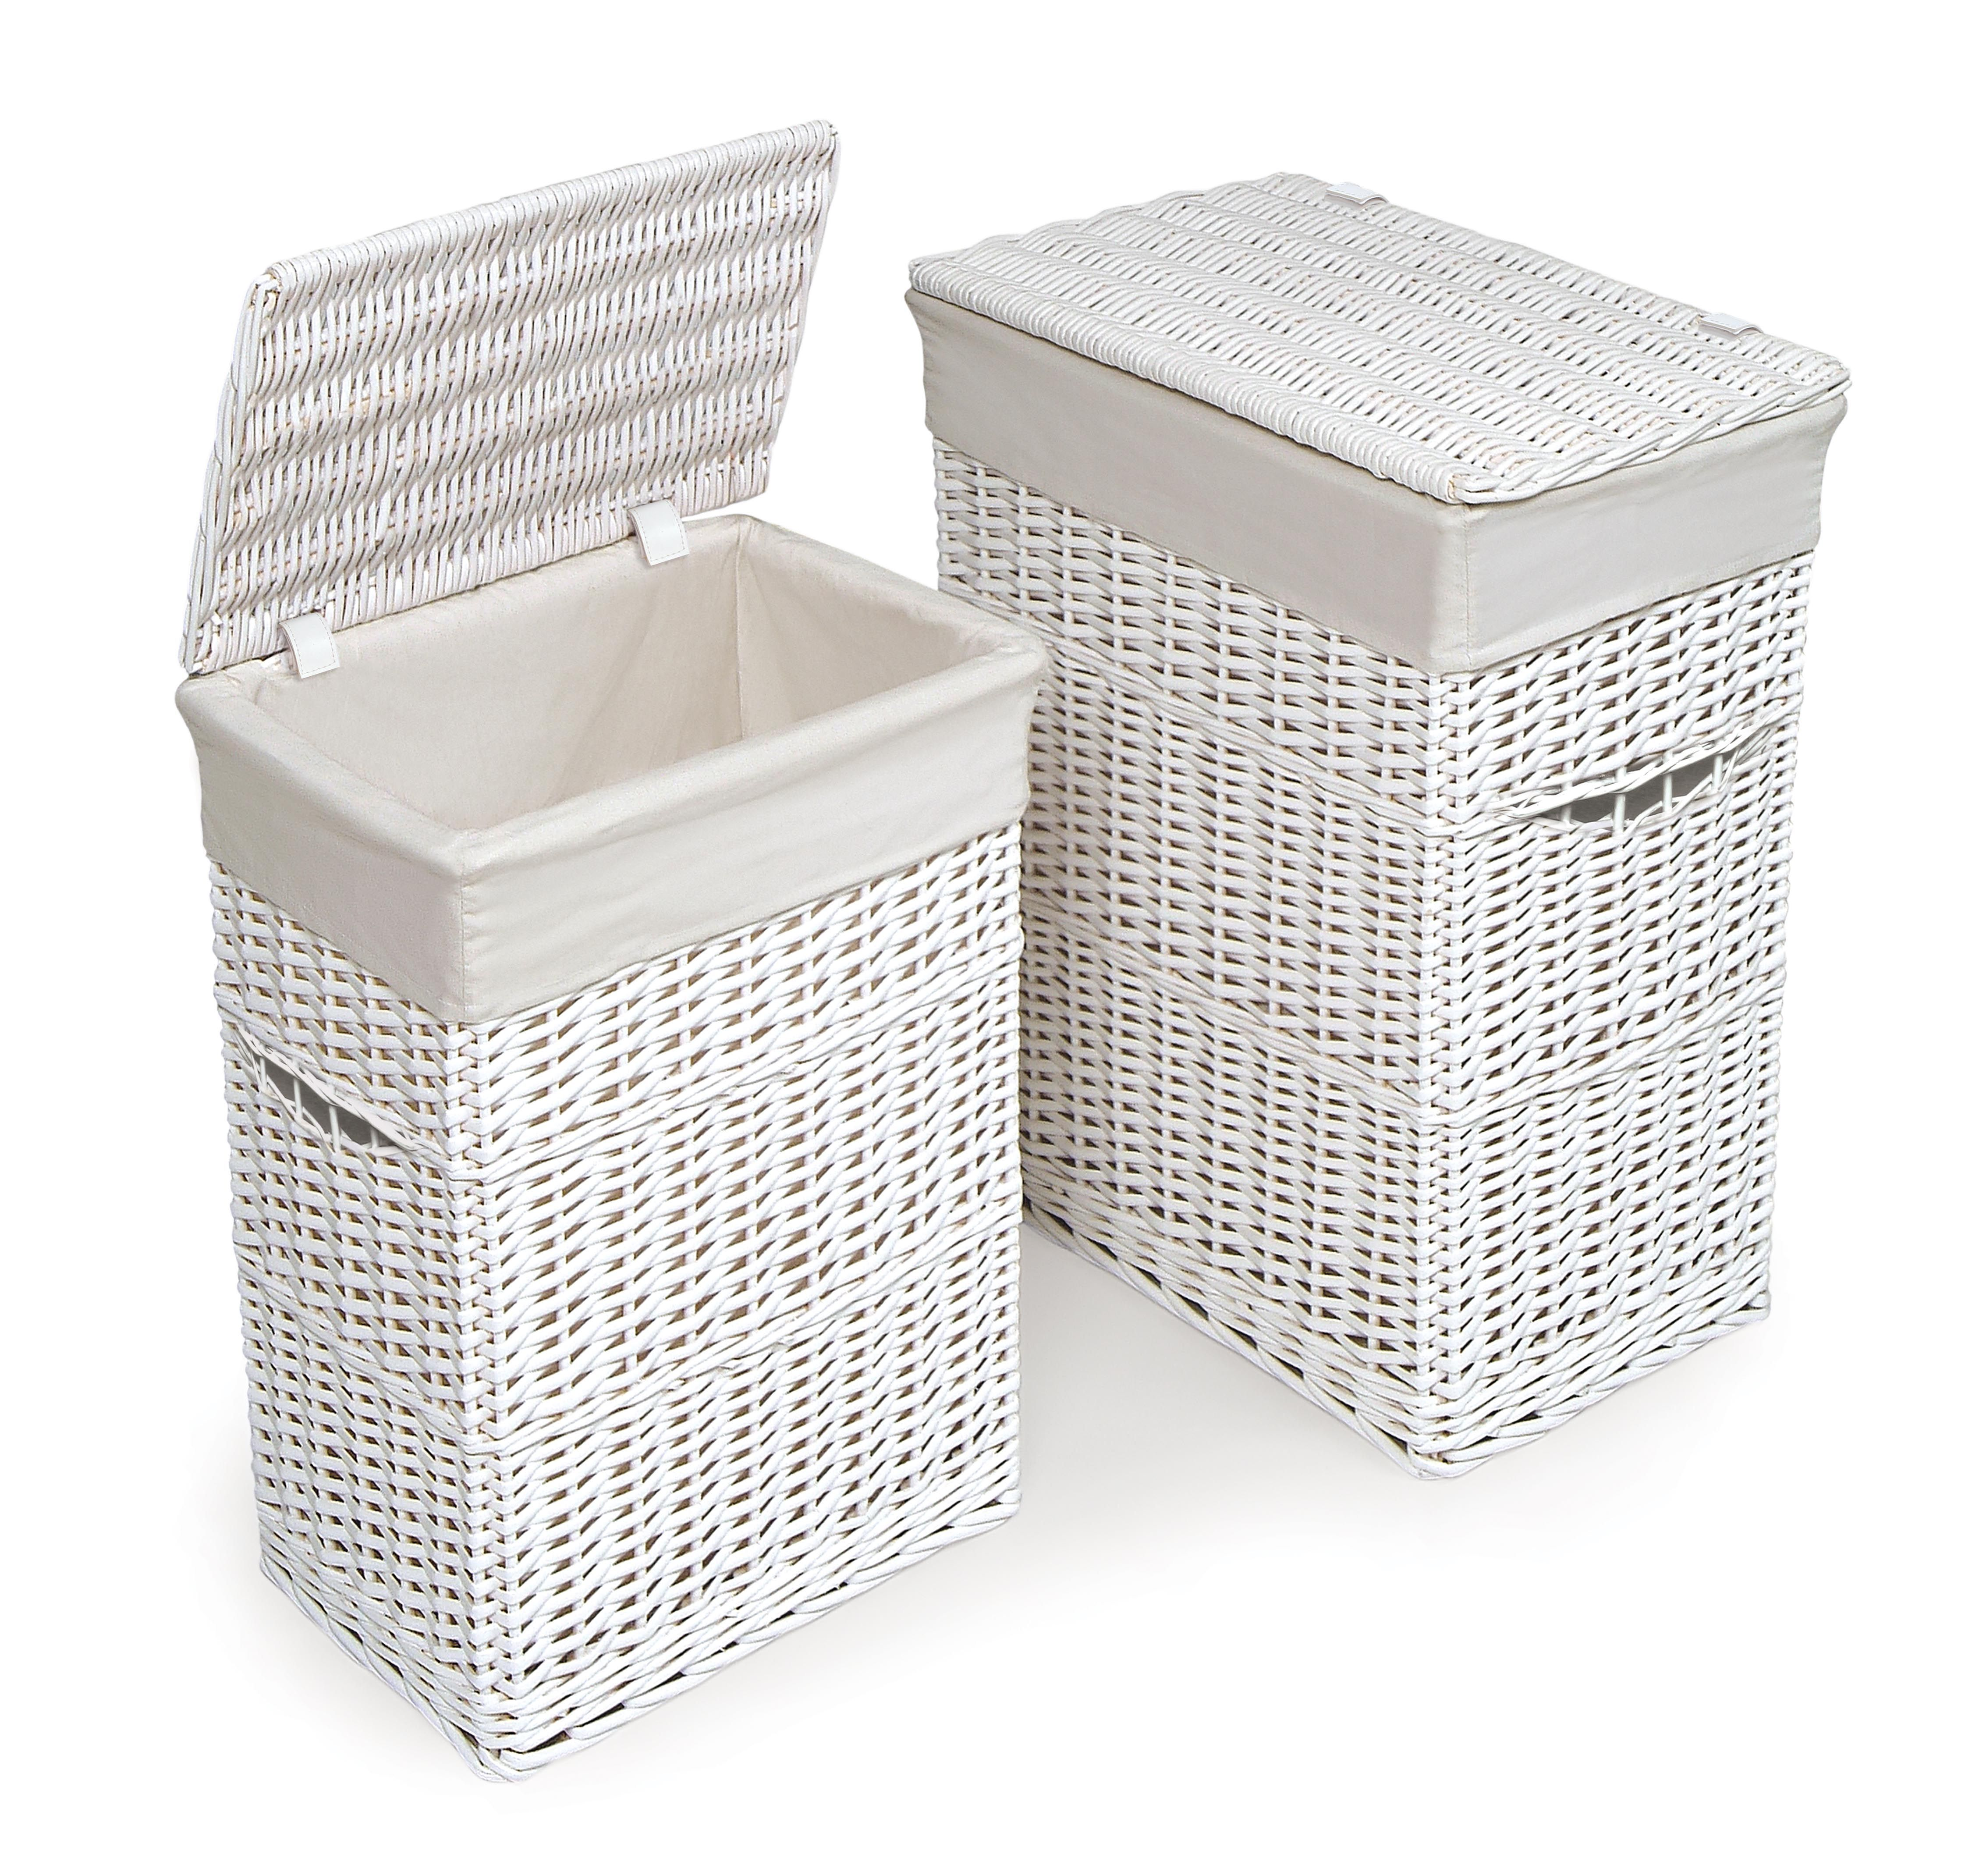 Baby In 2020 White Wicker Laundry Basket Laundry Hamper Laundry Basket With Lid